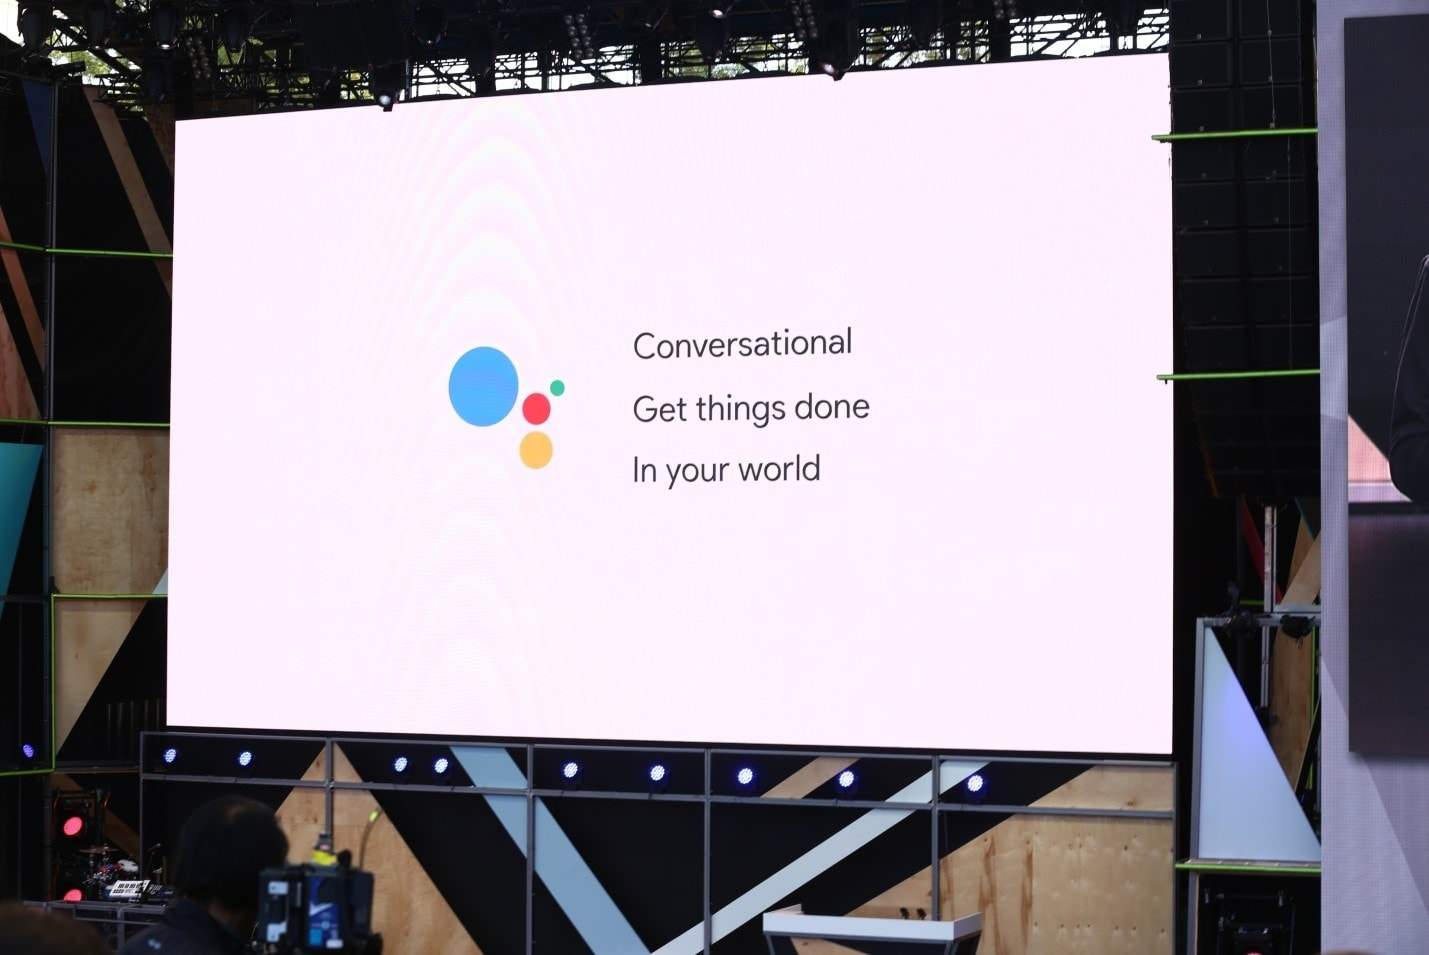 Developing - Google Lens: A new way to use your phone camera